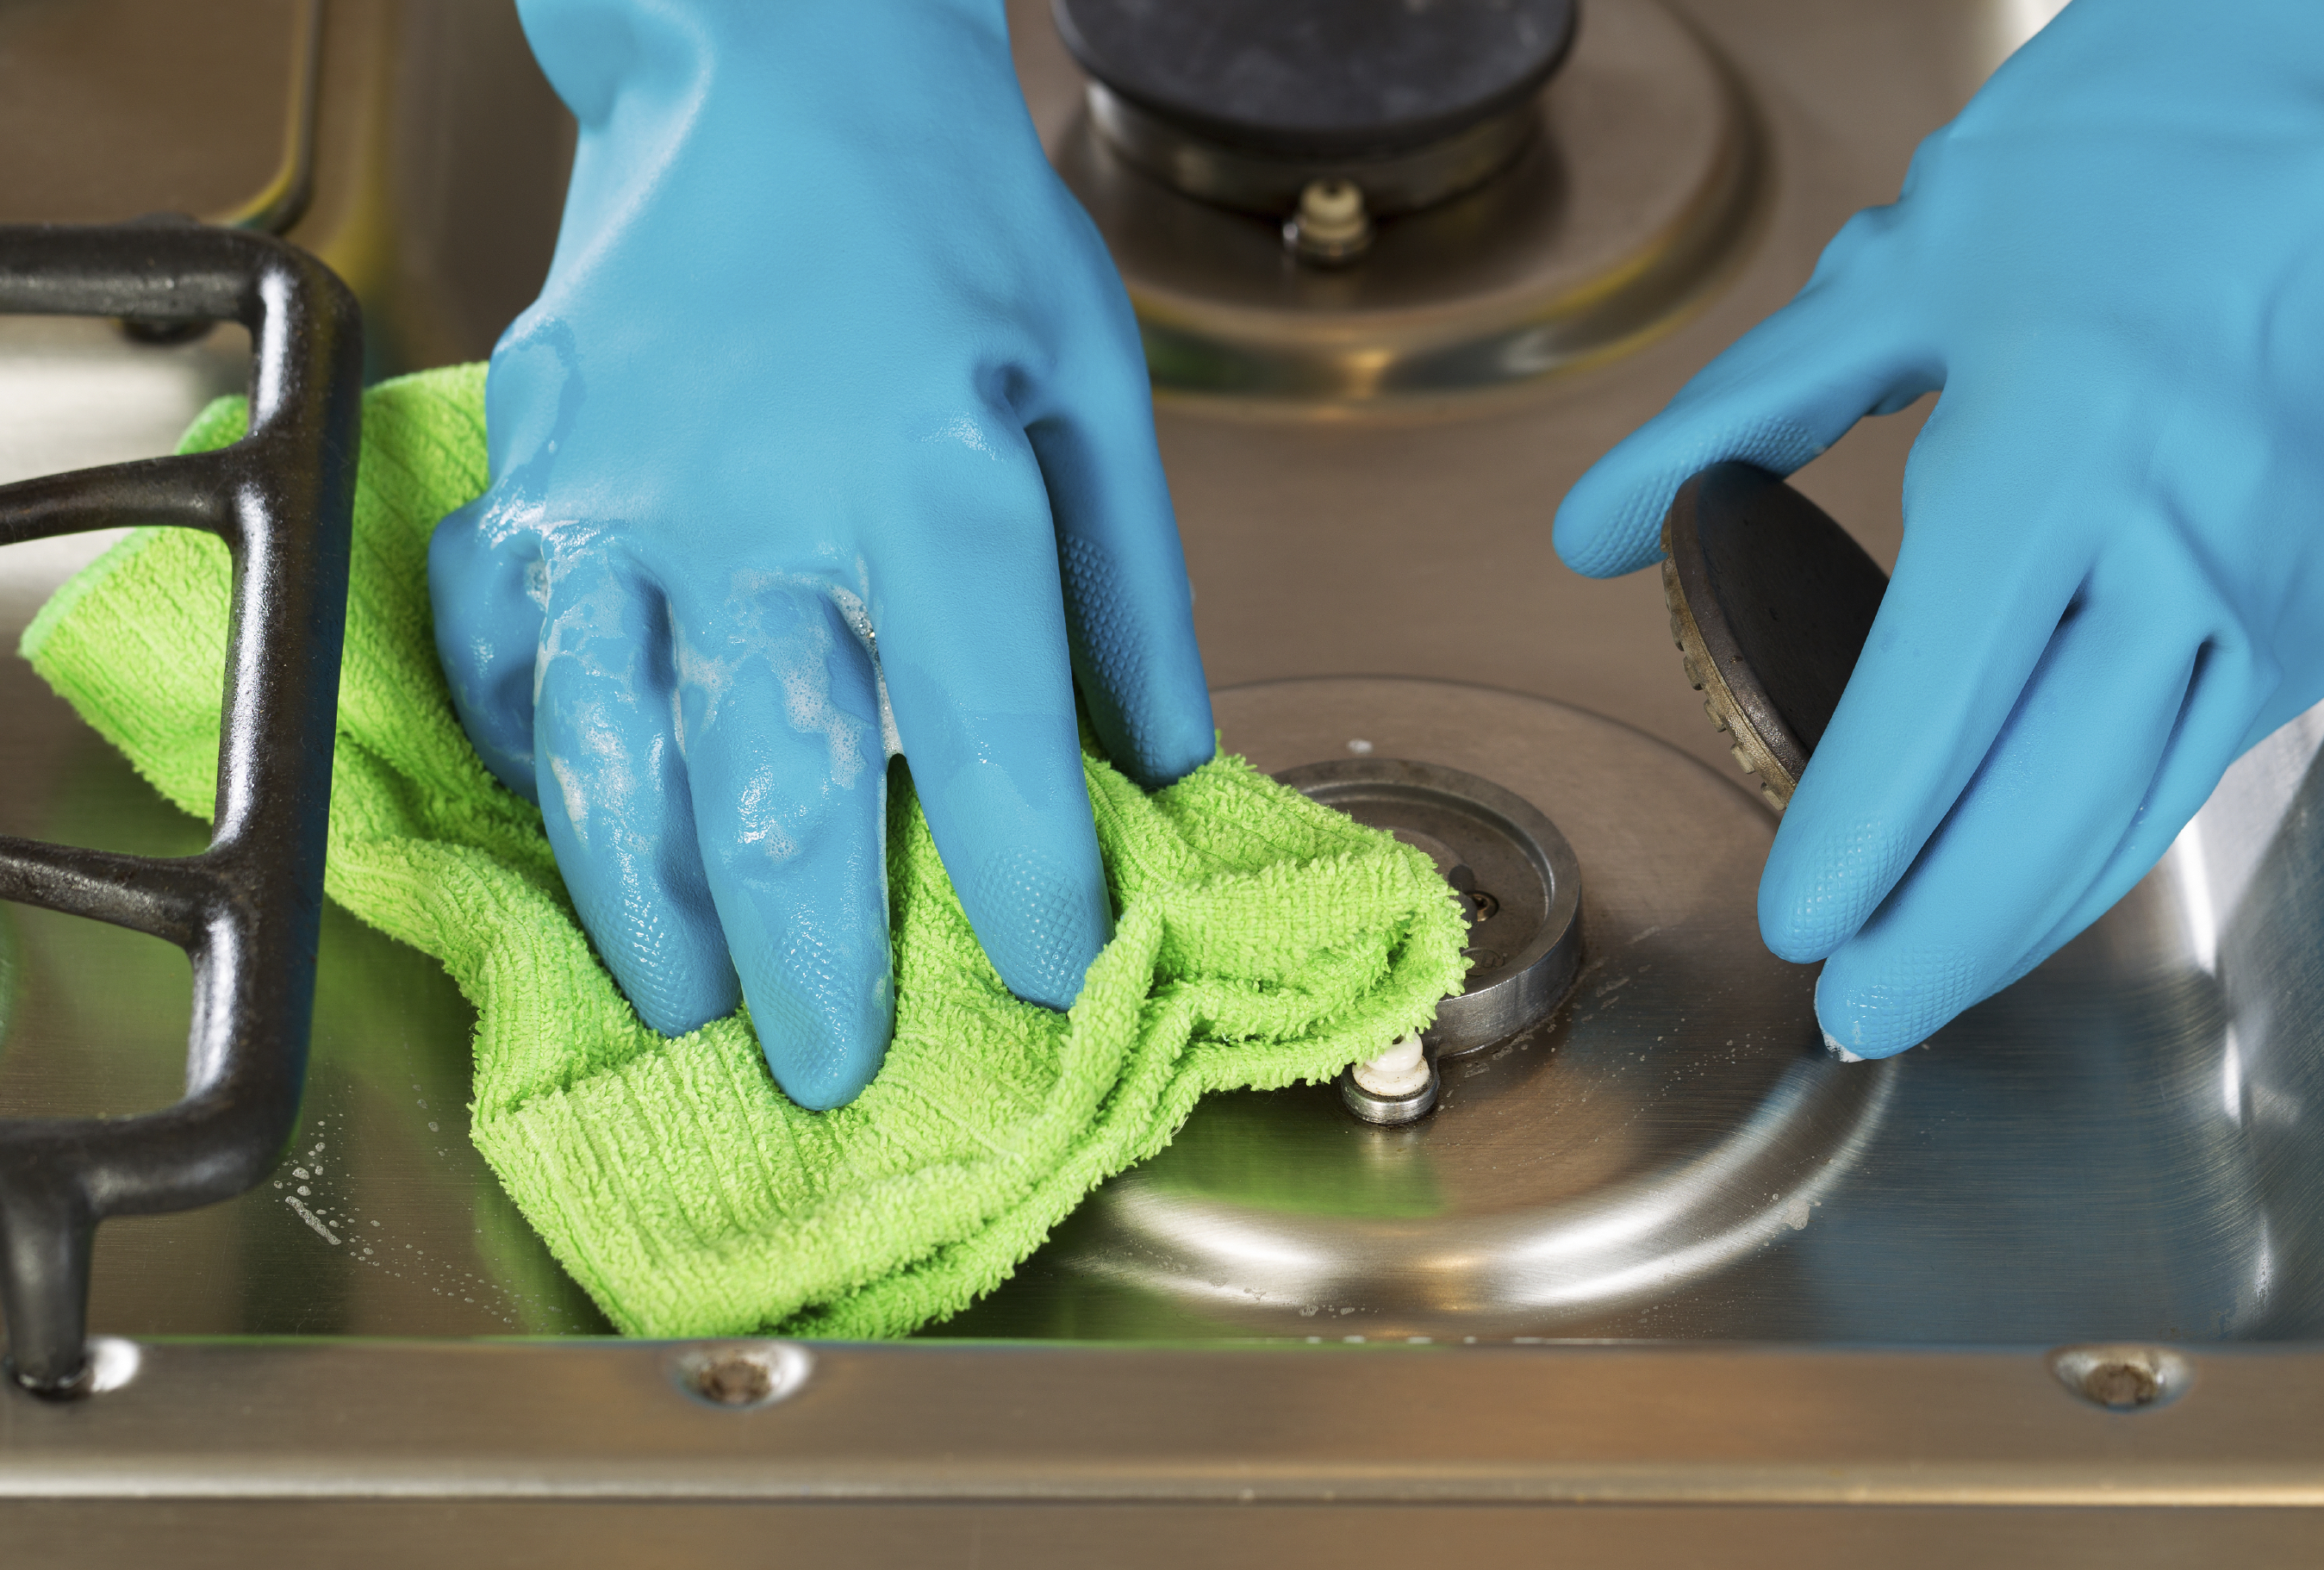 Don't forget to clean the stove before moving!